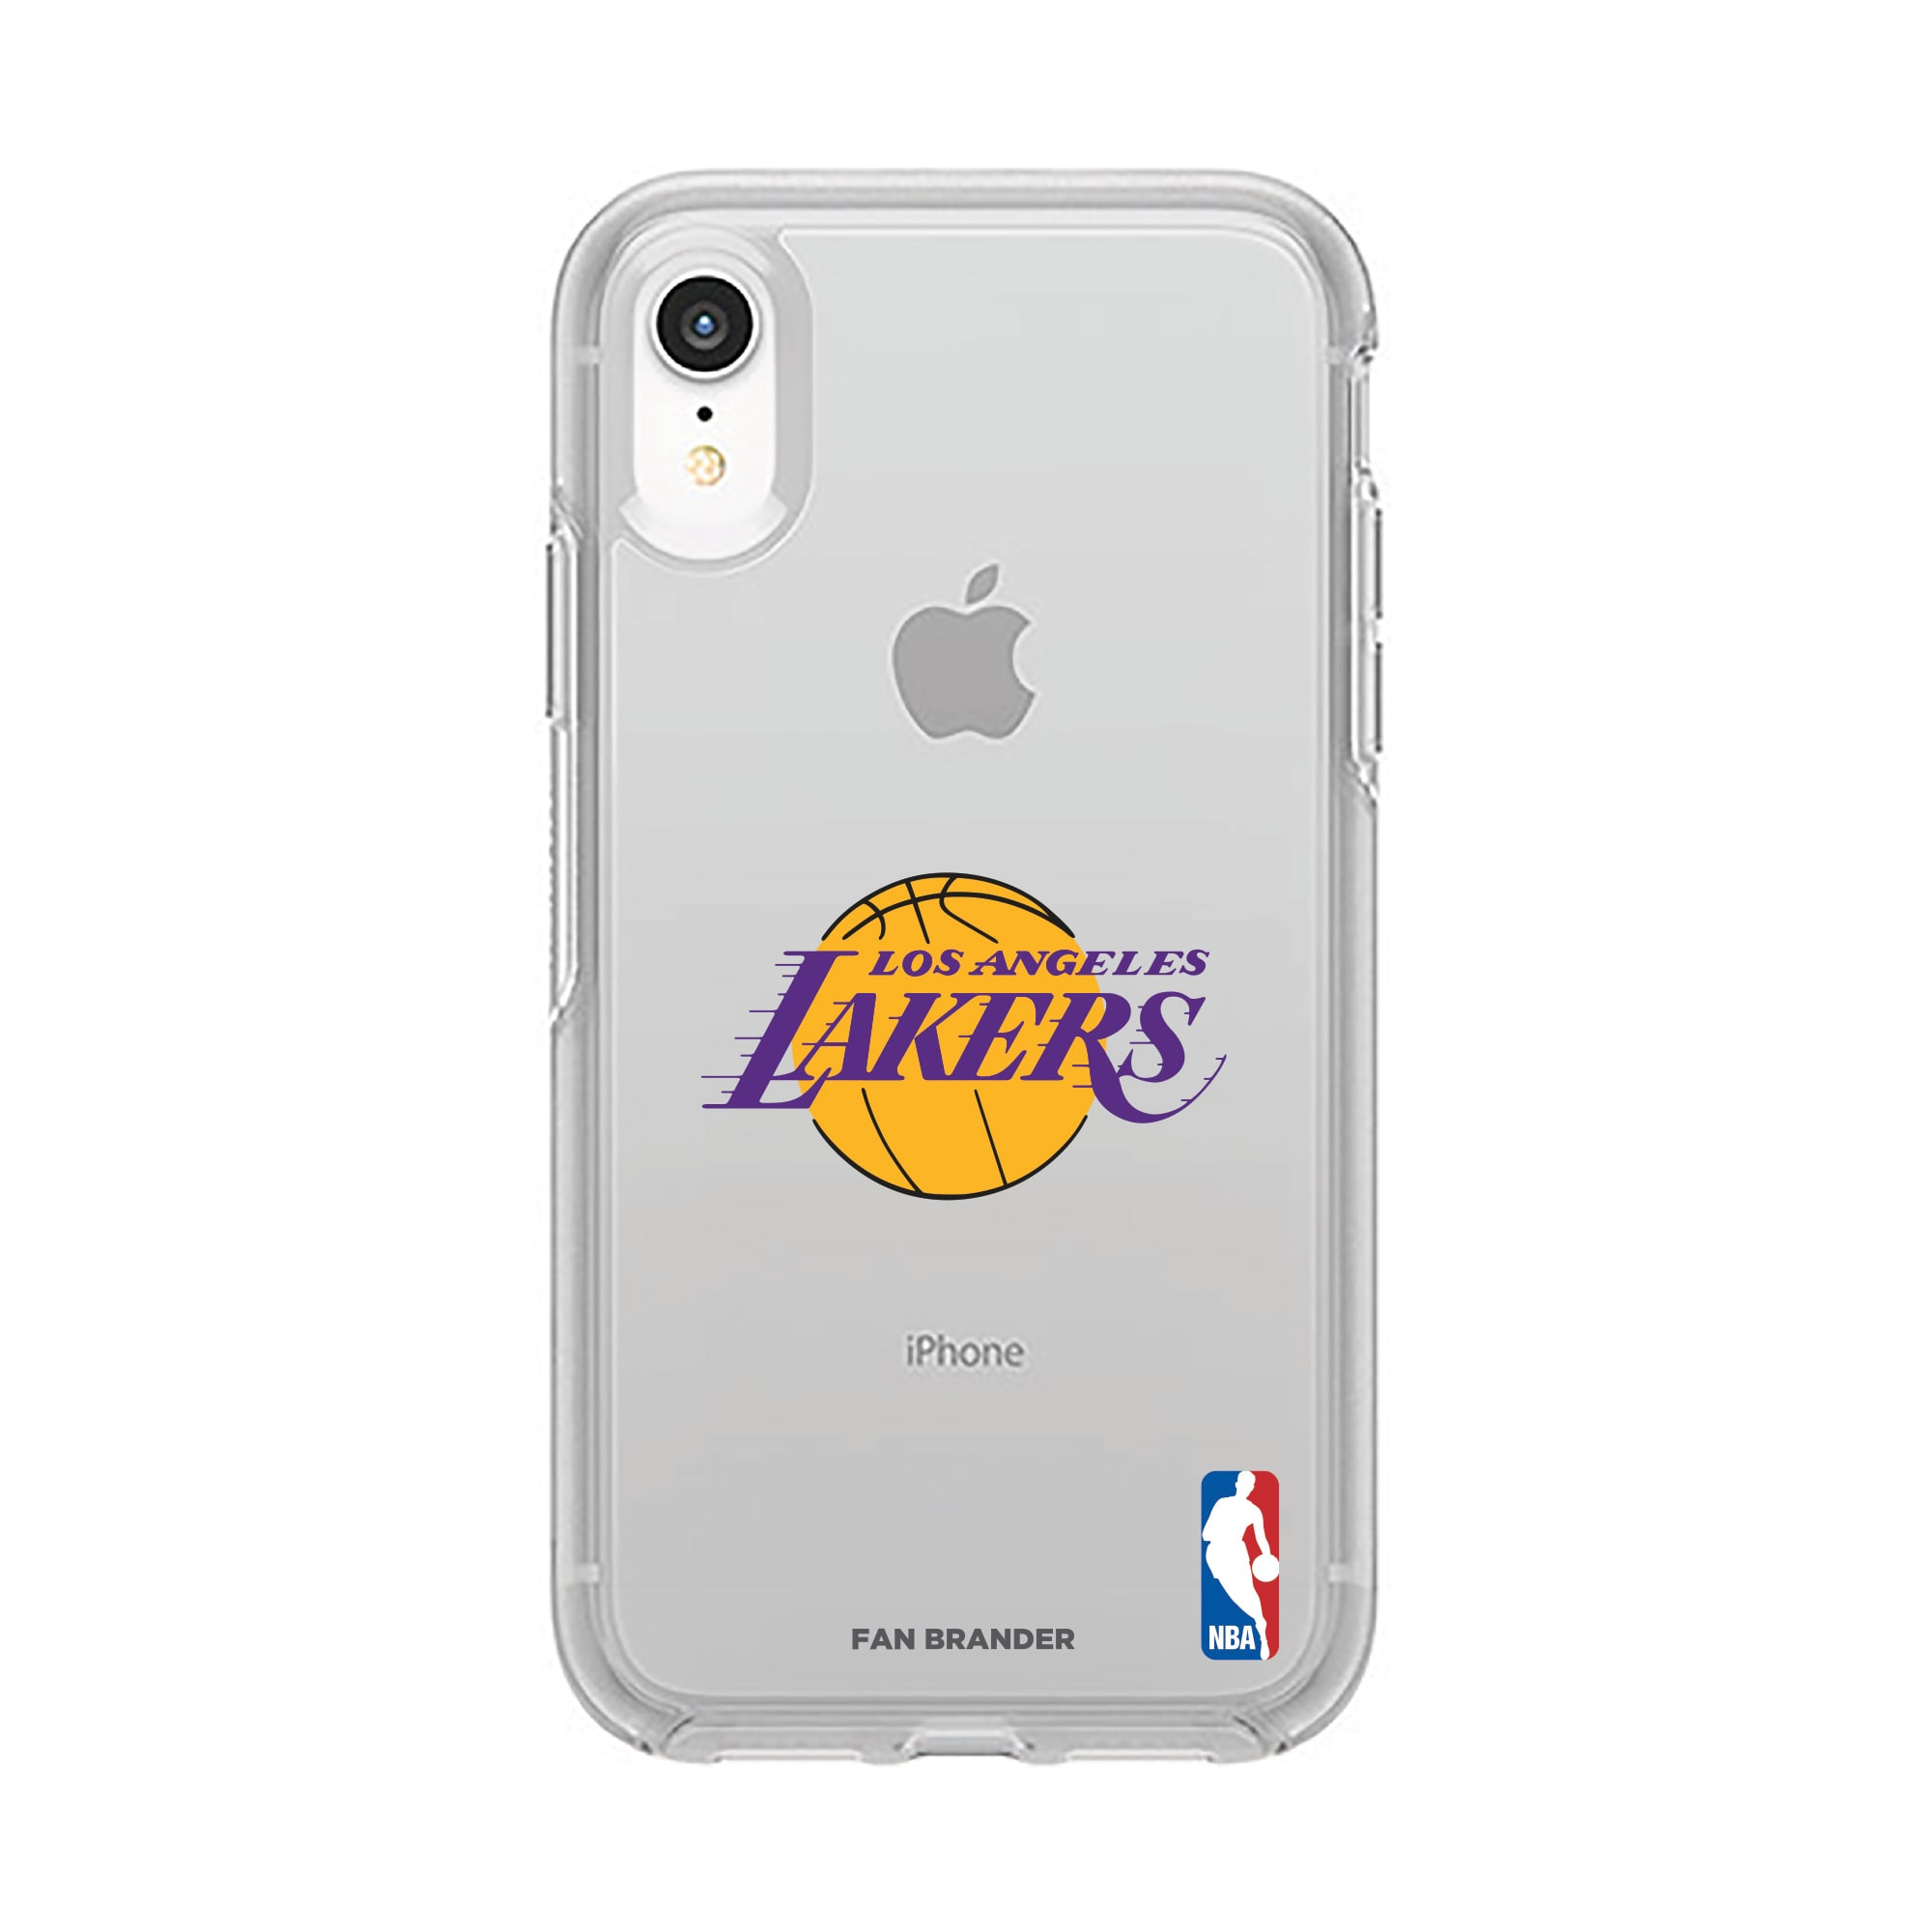 Los Angeles Lakers OtterBox Clear Primary Logo iPhone Case